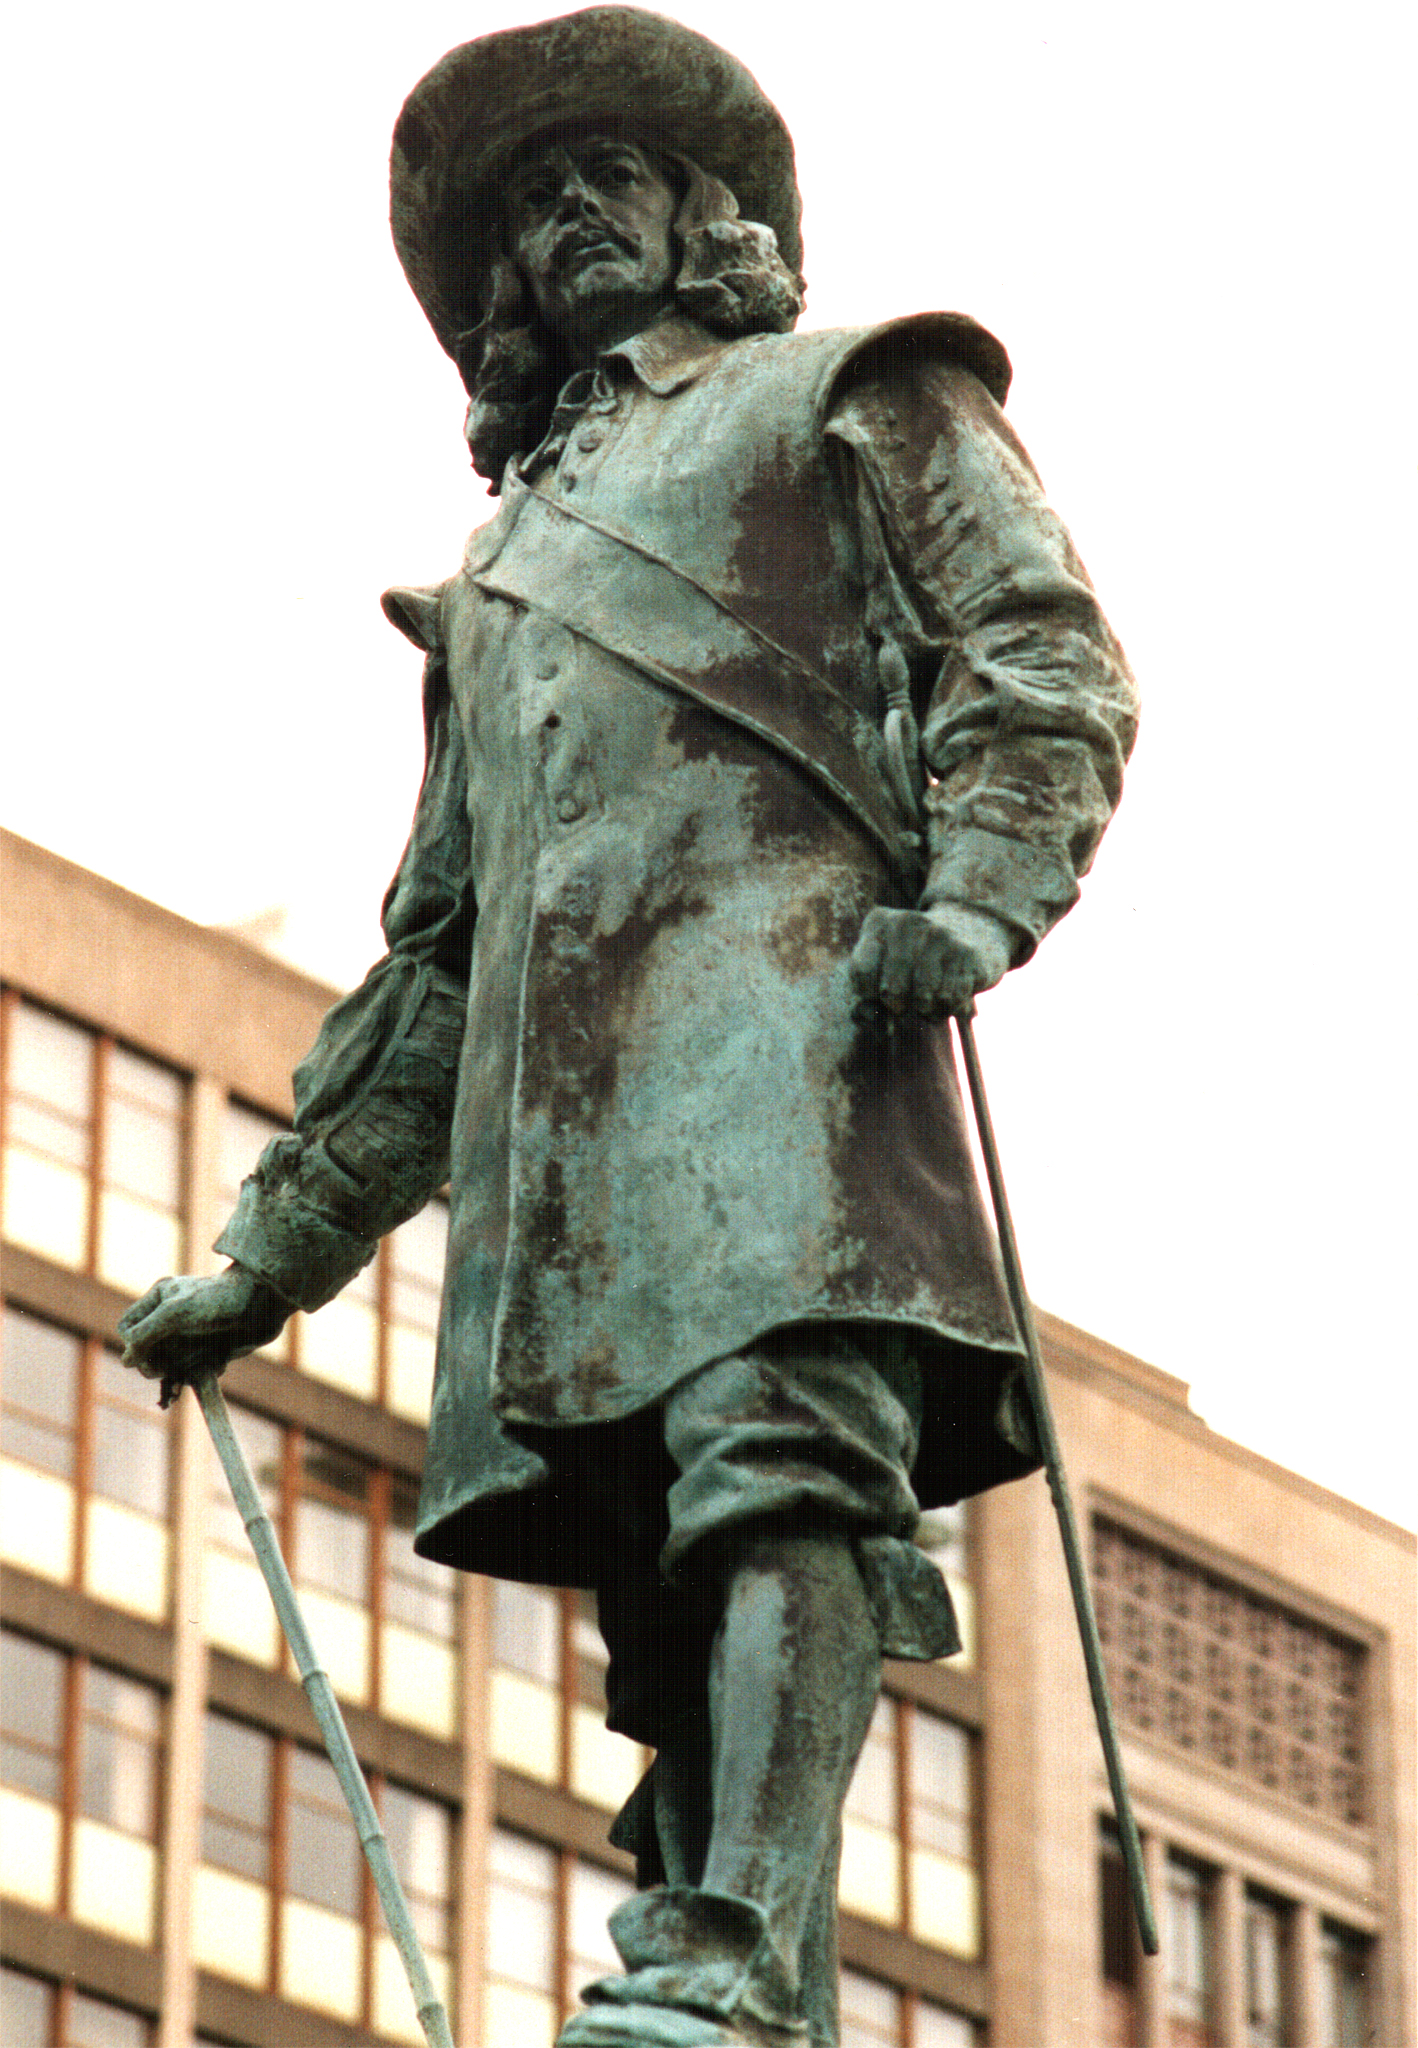 File:Jan Van Riebeeck Statue Cape Town.jpg - Wikimedia Commons